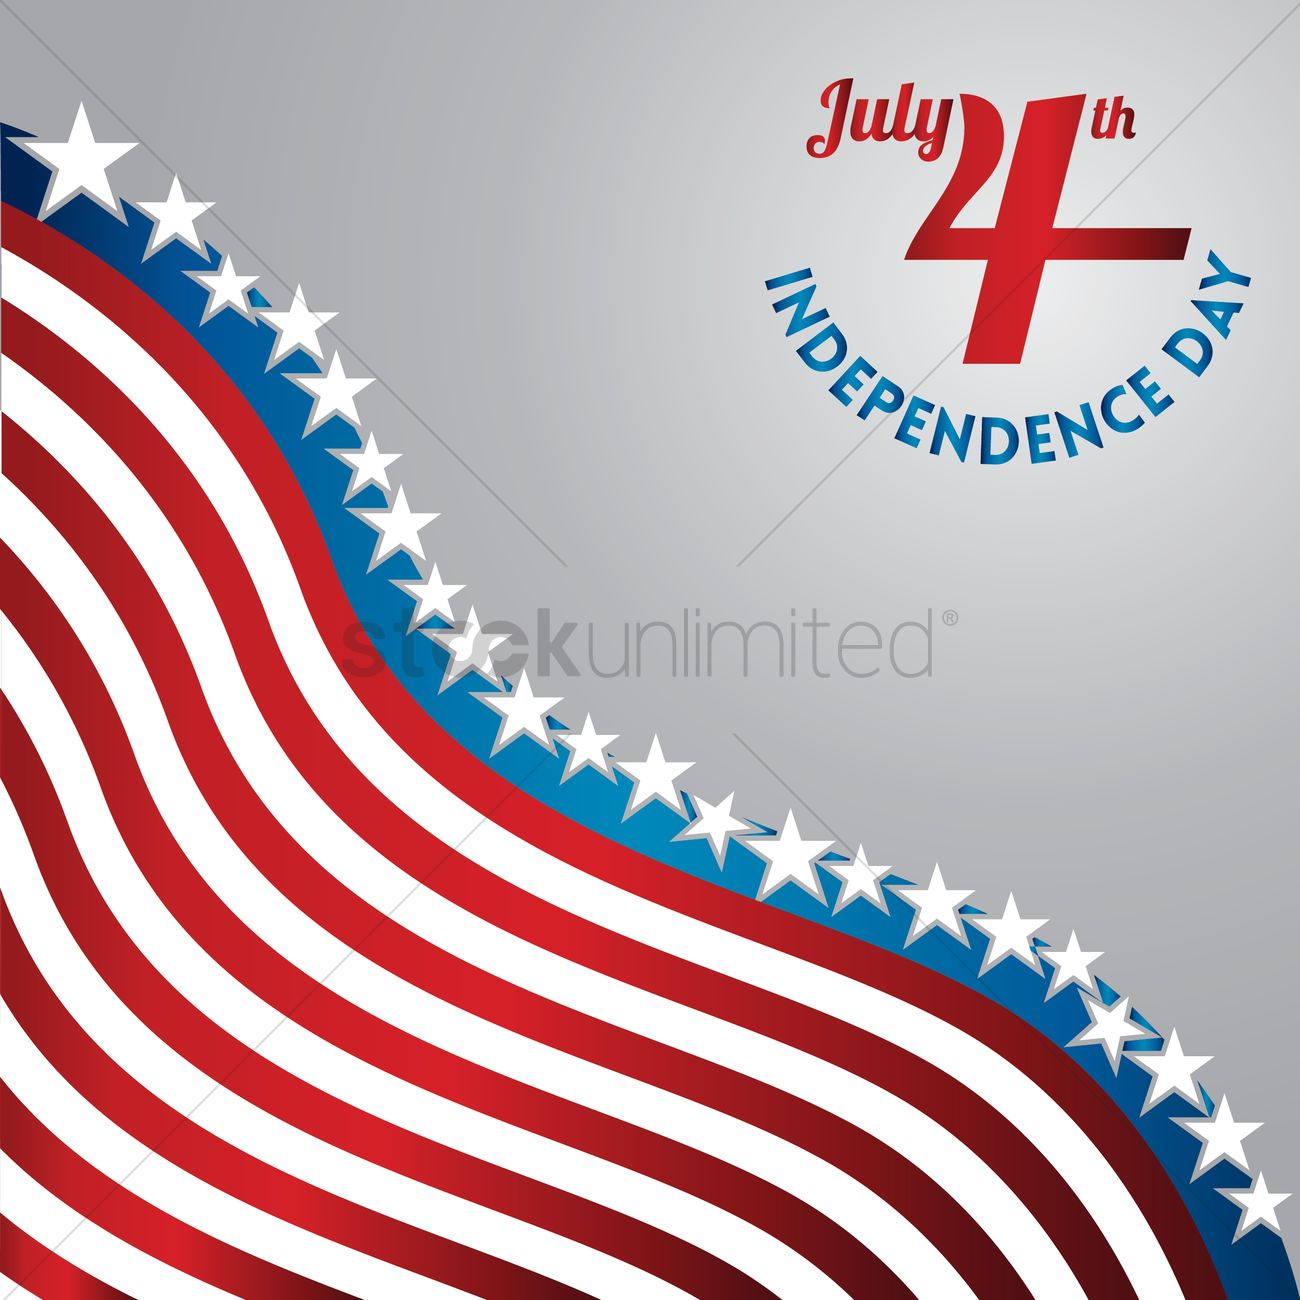 American independence day poster Vector Image - 1530427 | StockUnlimited